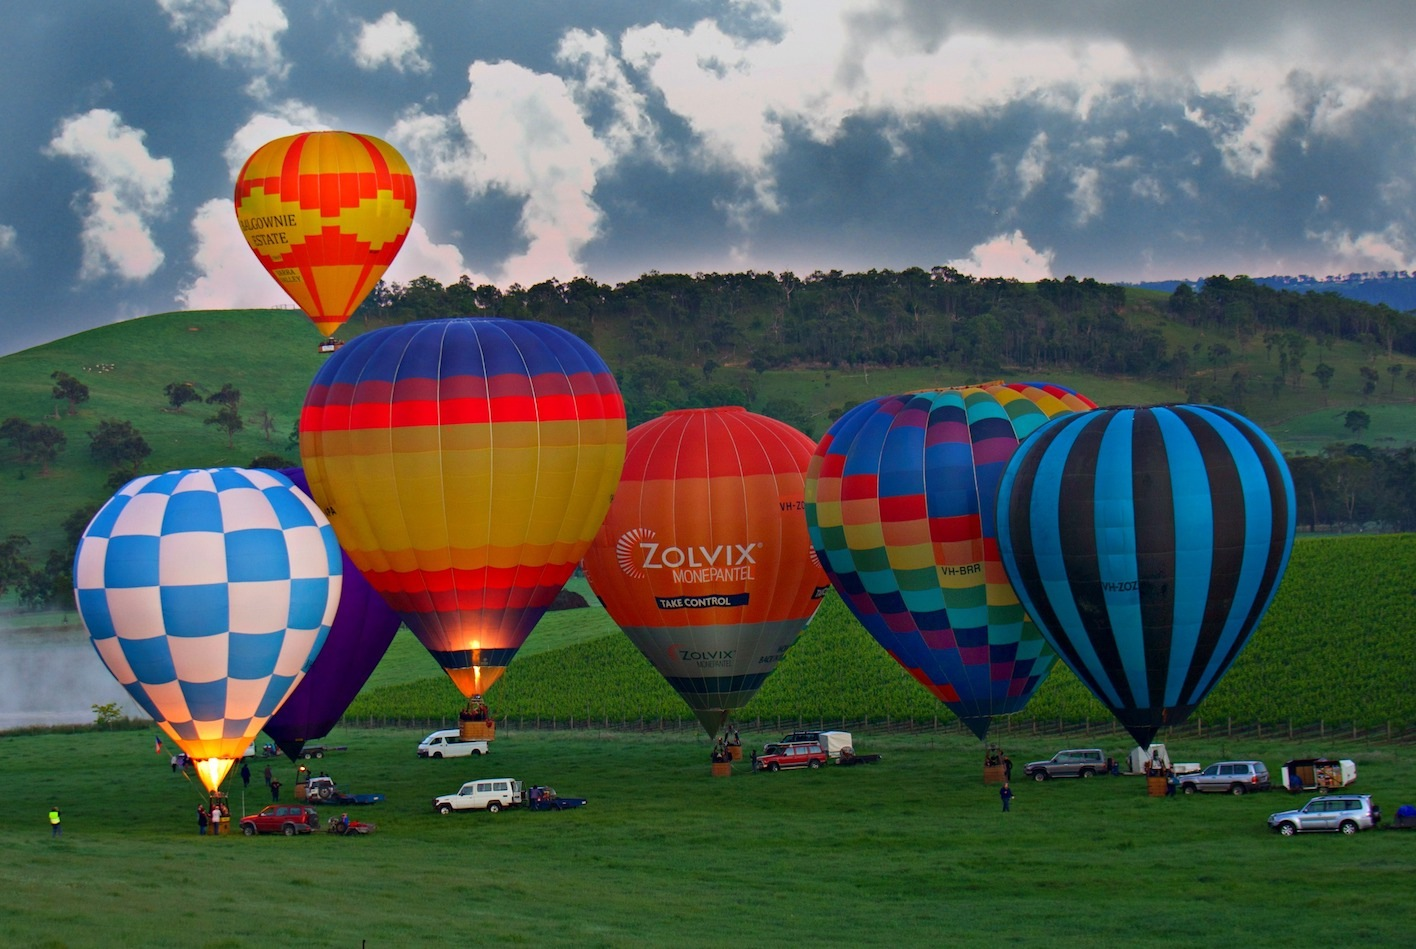 Up Up & Away by kevinmfairley